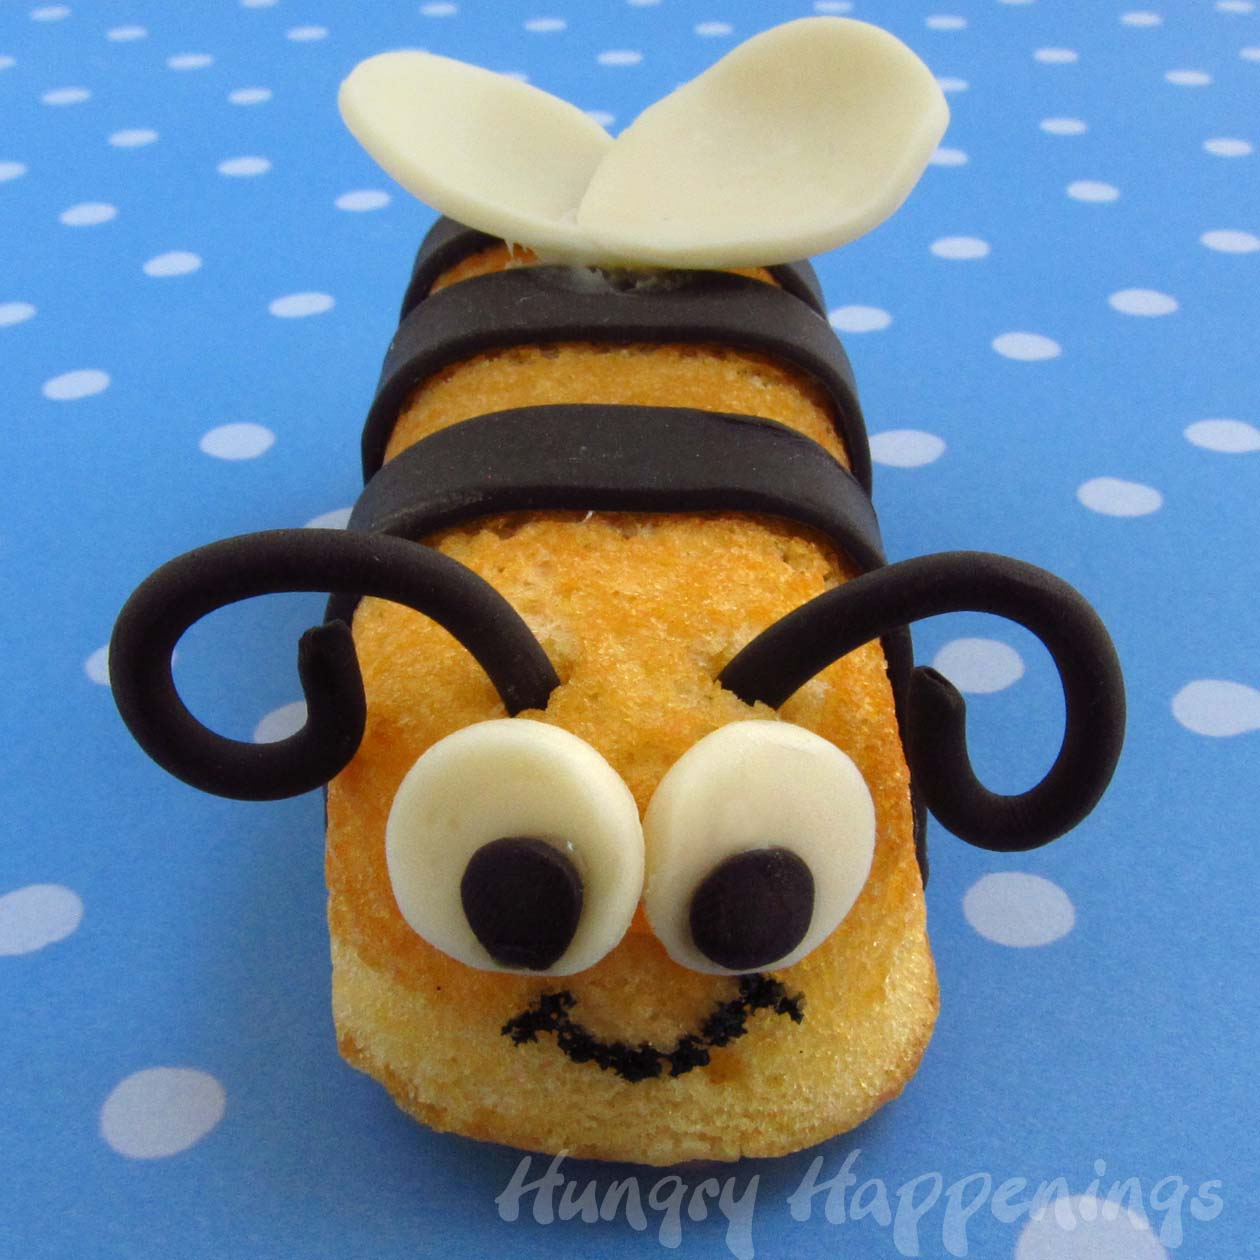 Craft bumble bee - Snack Cake Stingers Hostess Twinkie Bumble Bee Treats